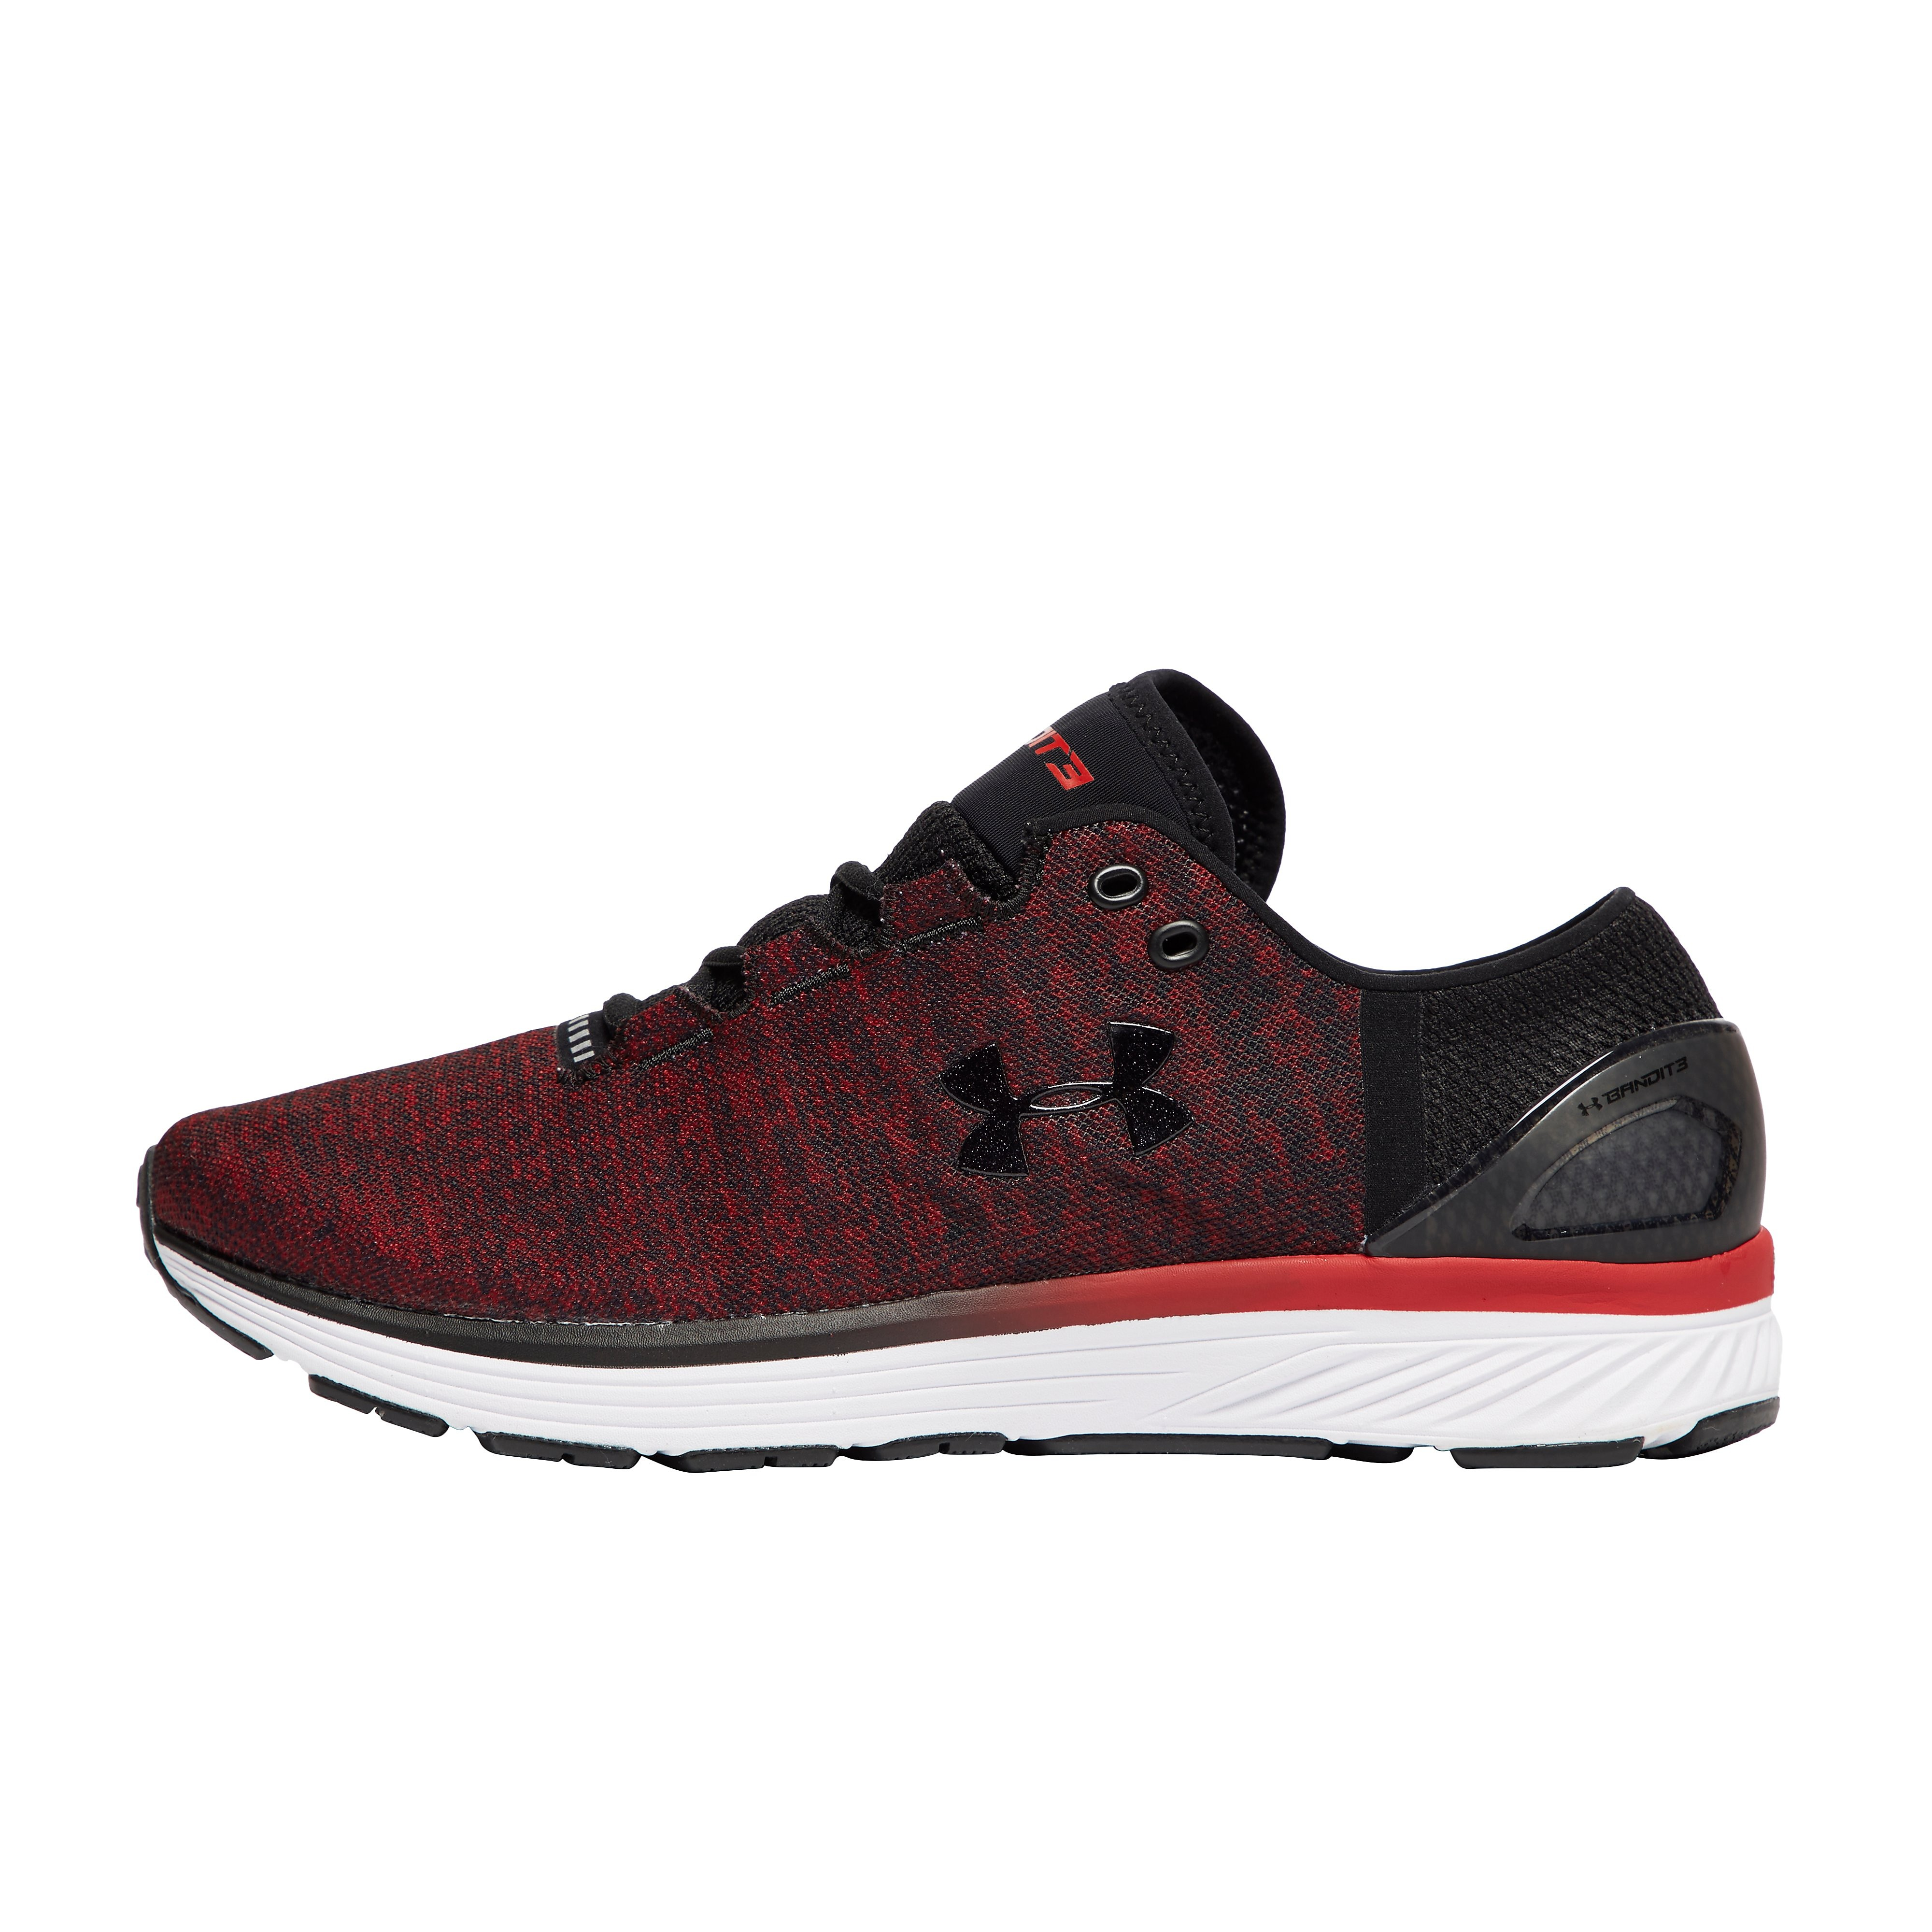 Men's Under Armour Bandit Running Shoes - Black/Spice Red, Black/Spice Red